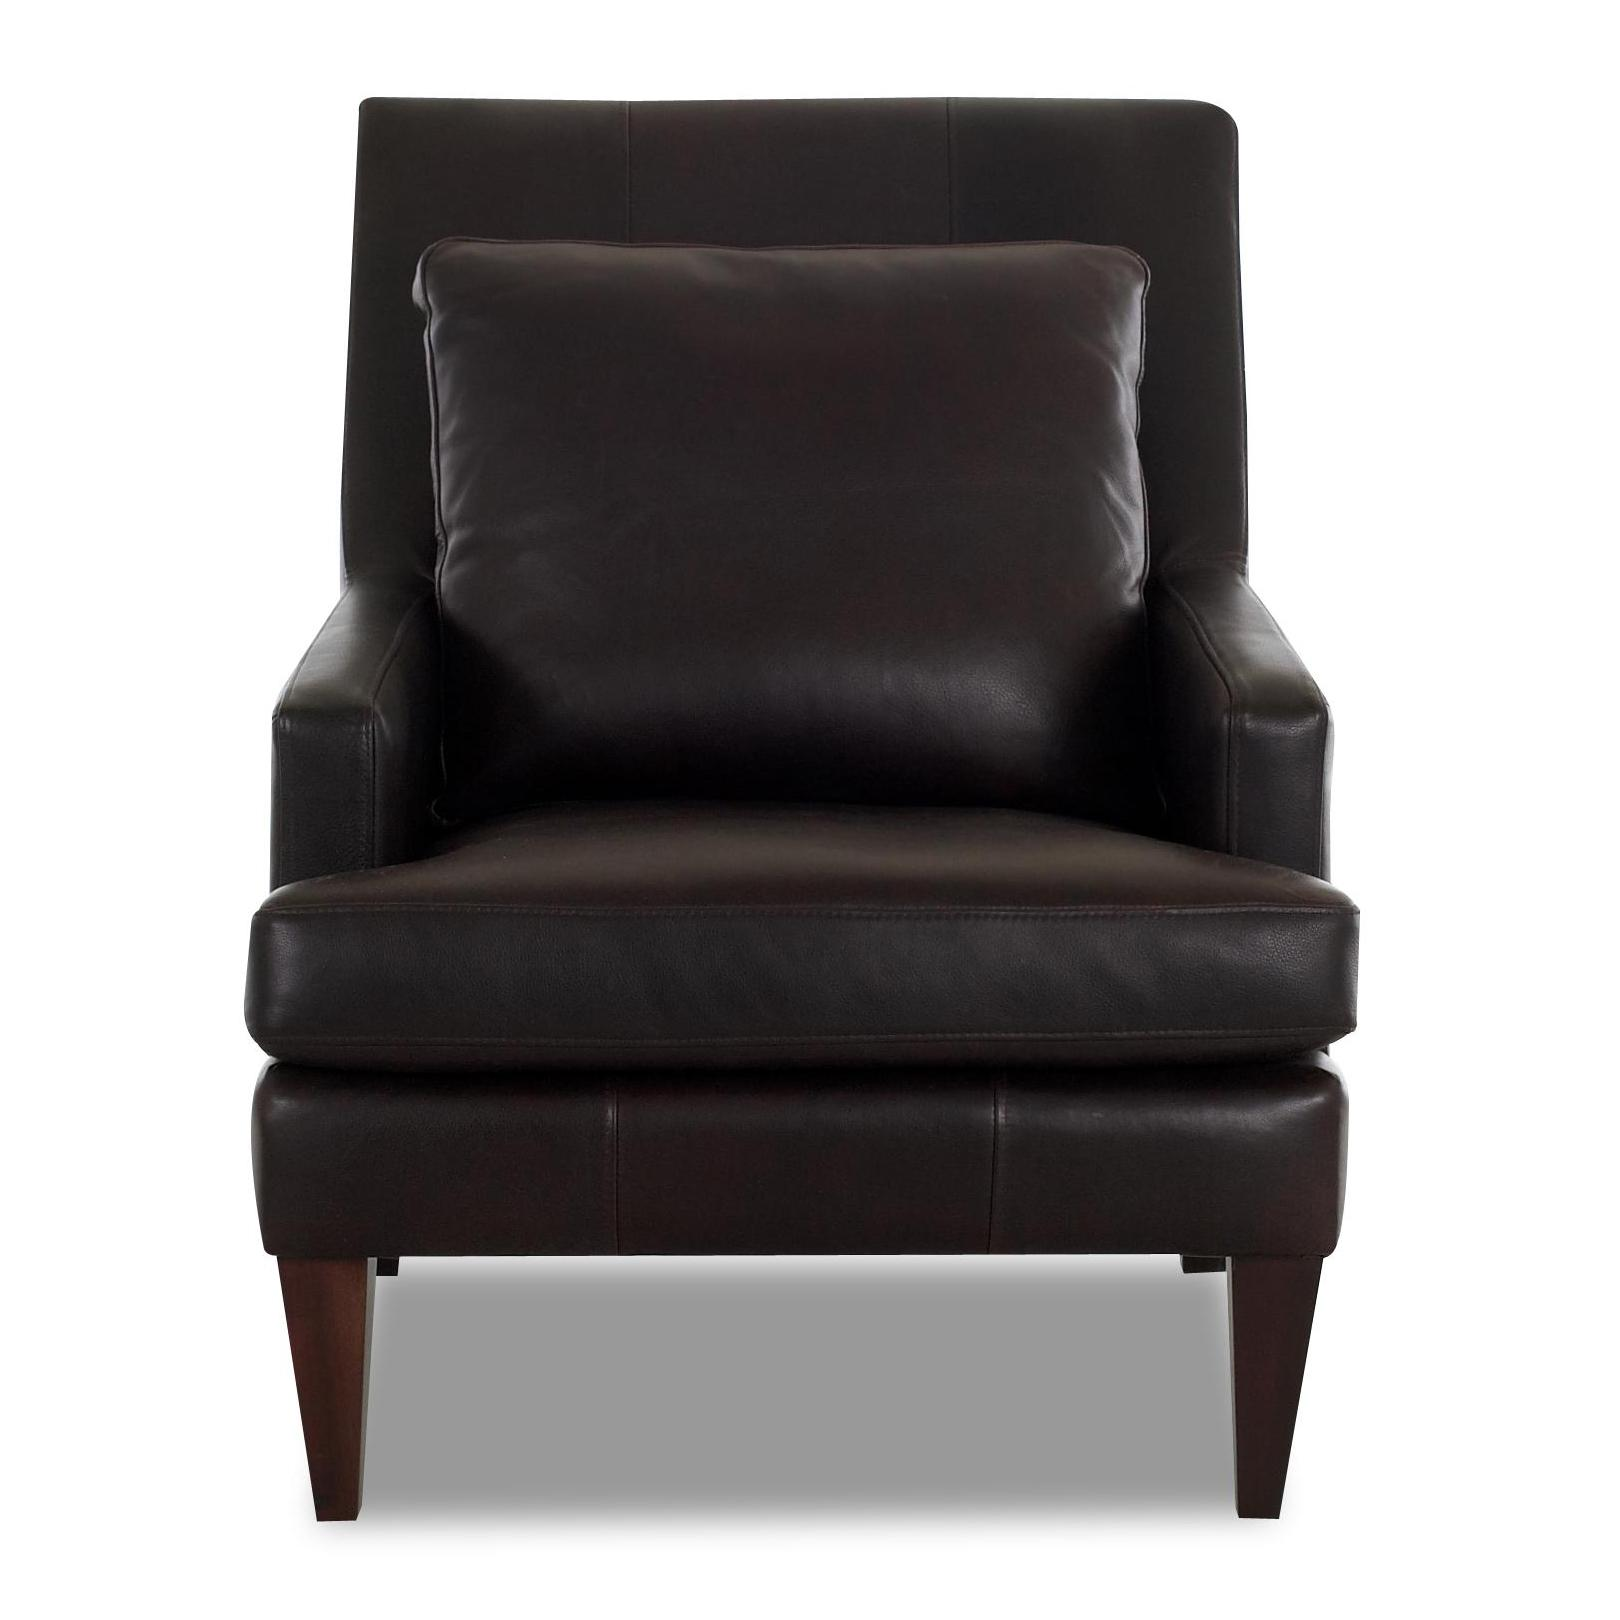 Klaussner Chairs and Accents Townsend Chair - Item Number: LD11000C